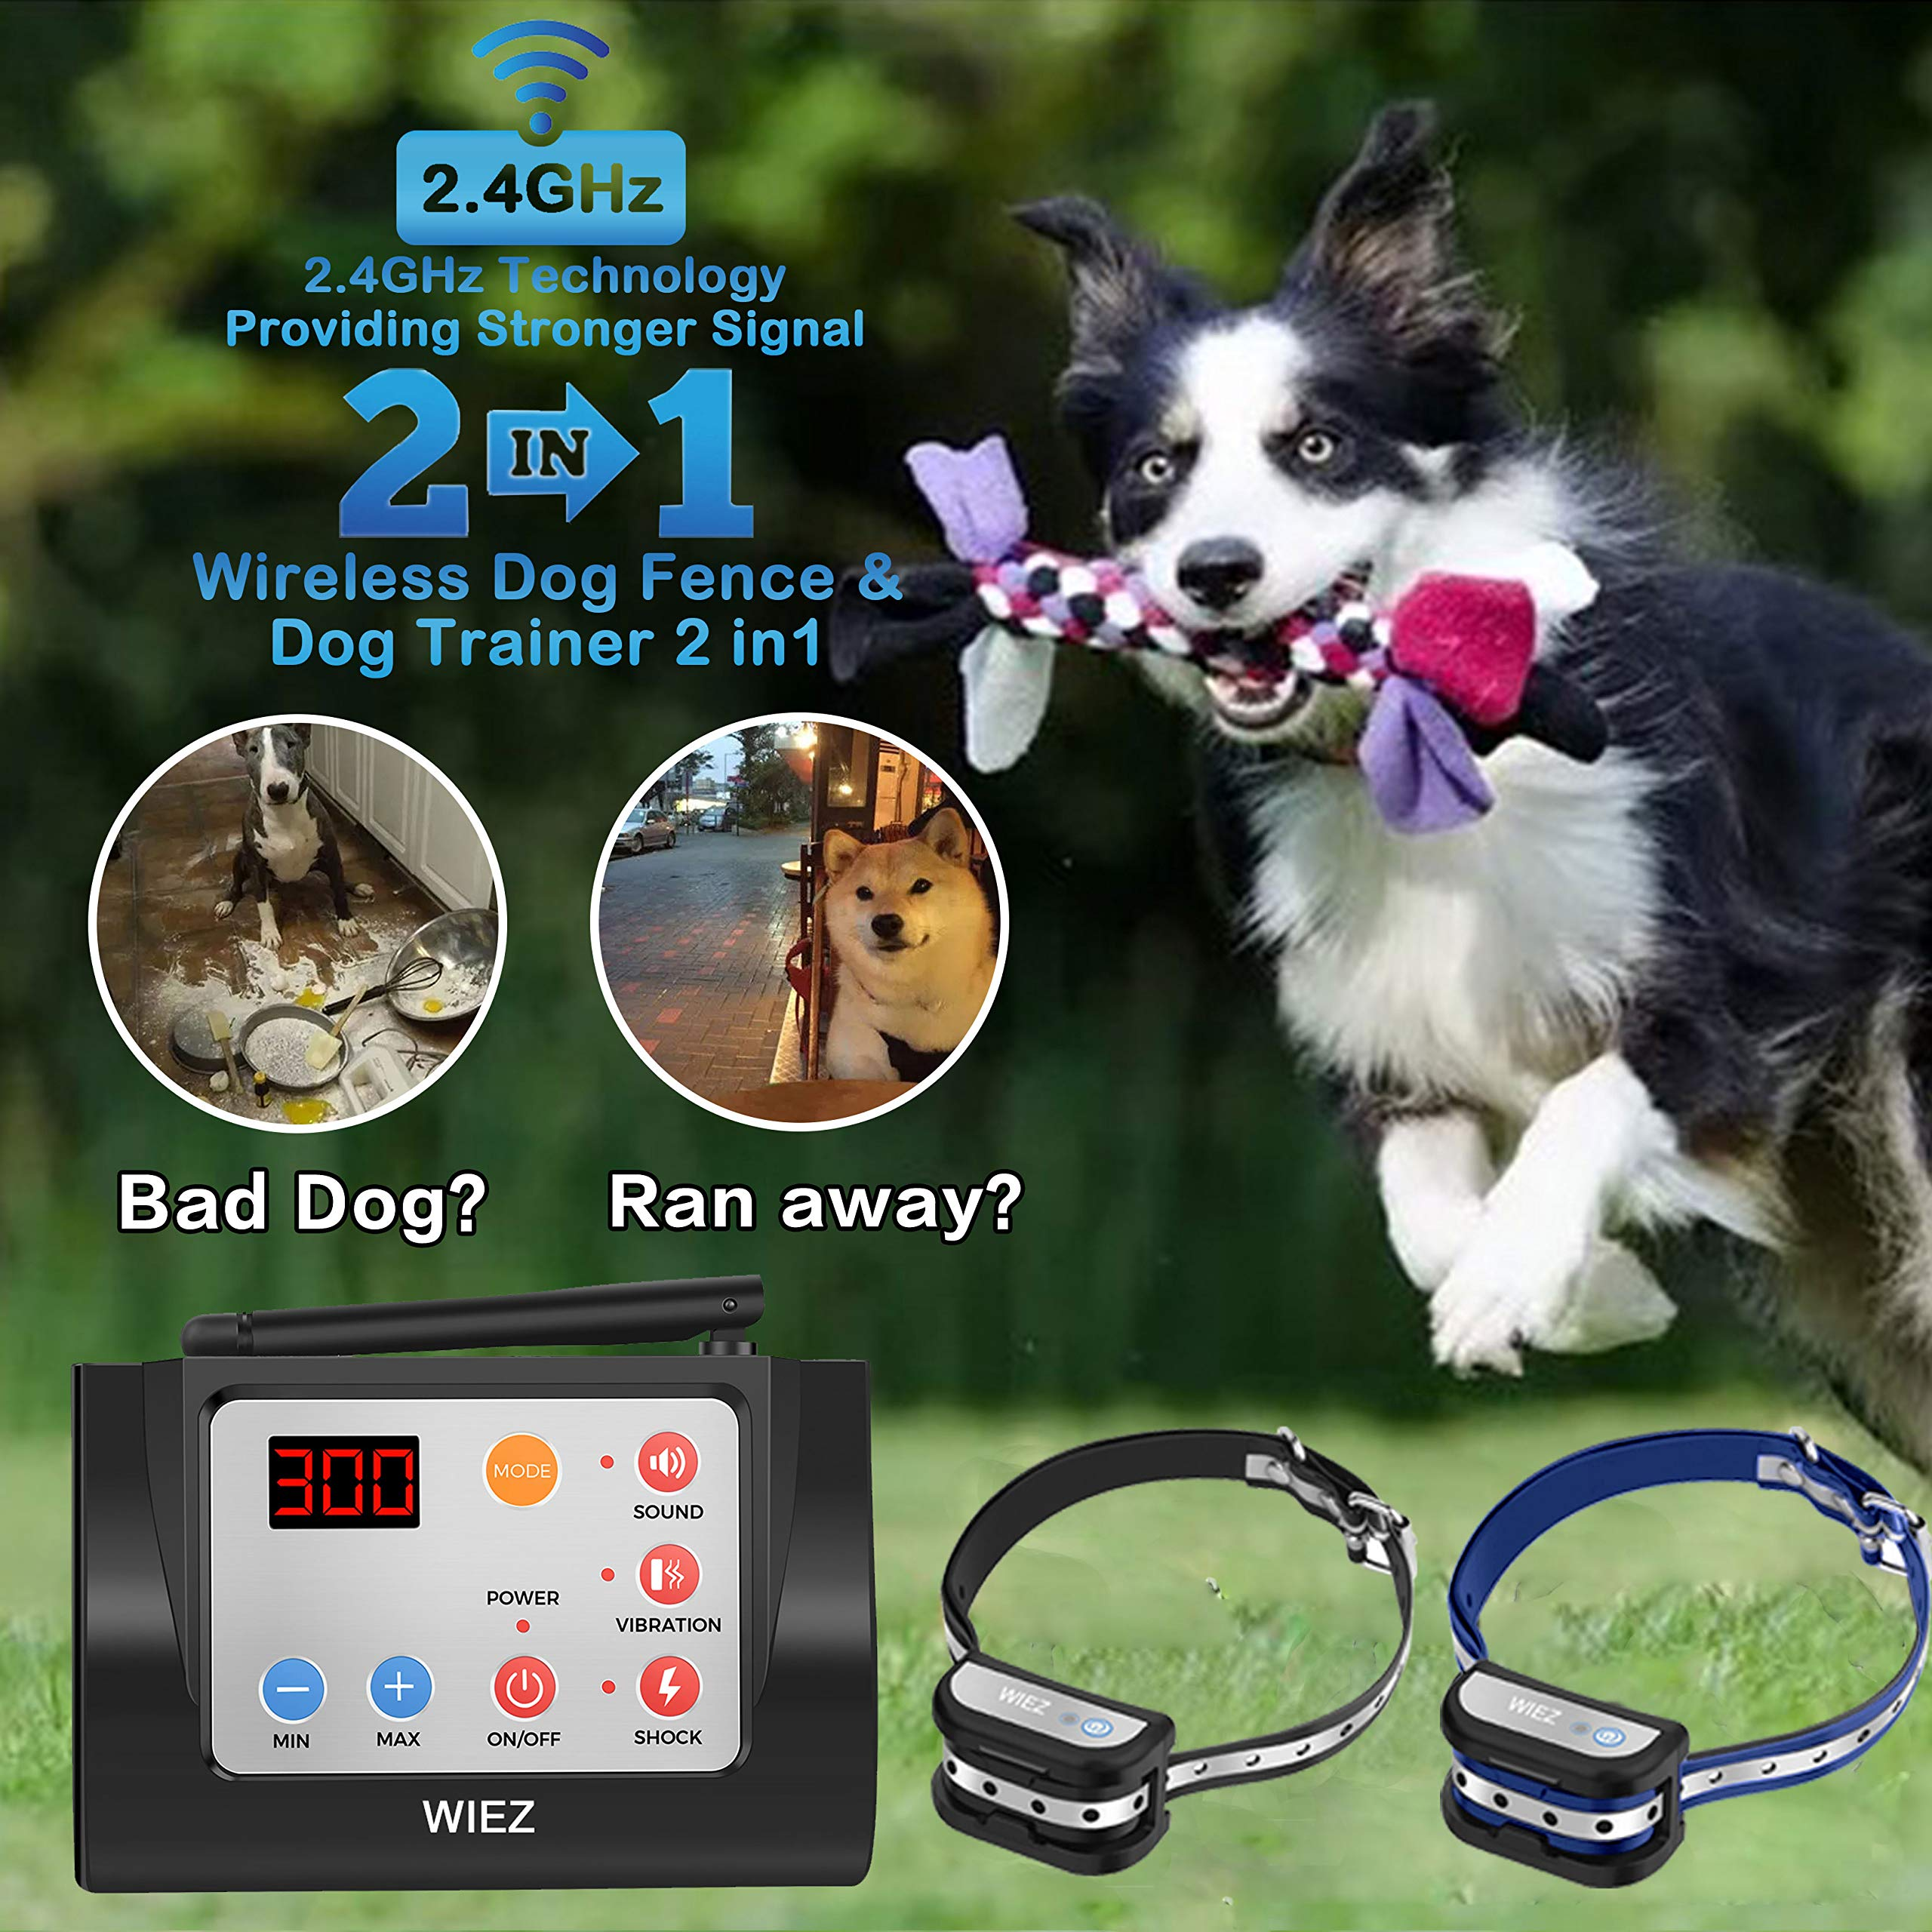 WIEZ Dog Fence Wireless & Training Collar Outdoor 2-in-1, Electric Wireless Fence for Dogs w/Remote, Adjustable Range Control, Waterproof Reflective Stripe Collar, Harmless for All Dogs- 2 Collars by WIEZ